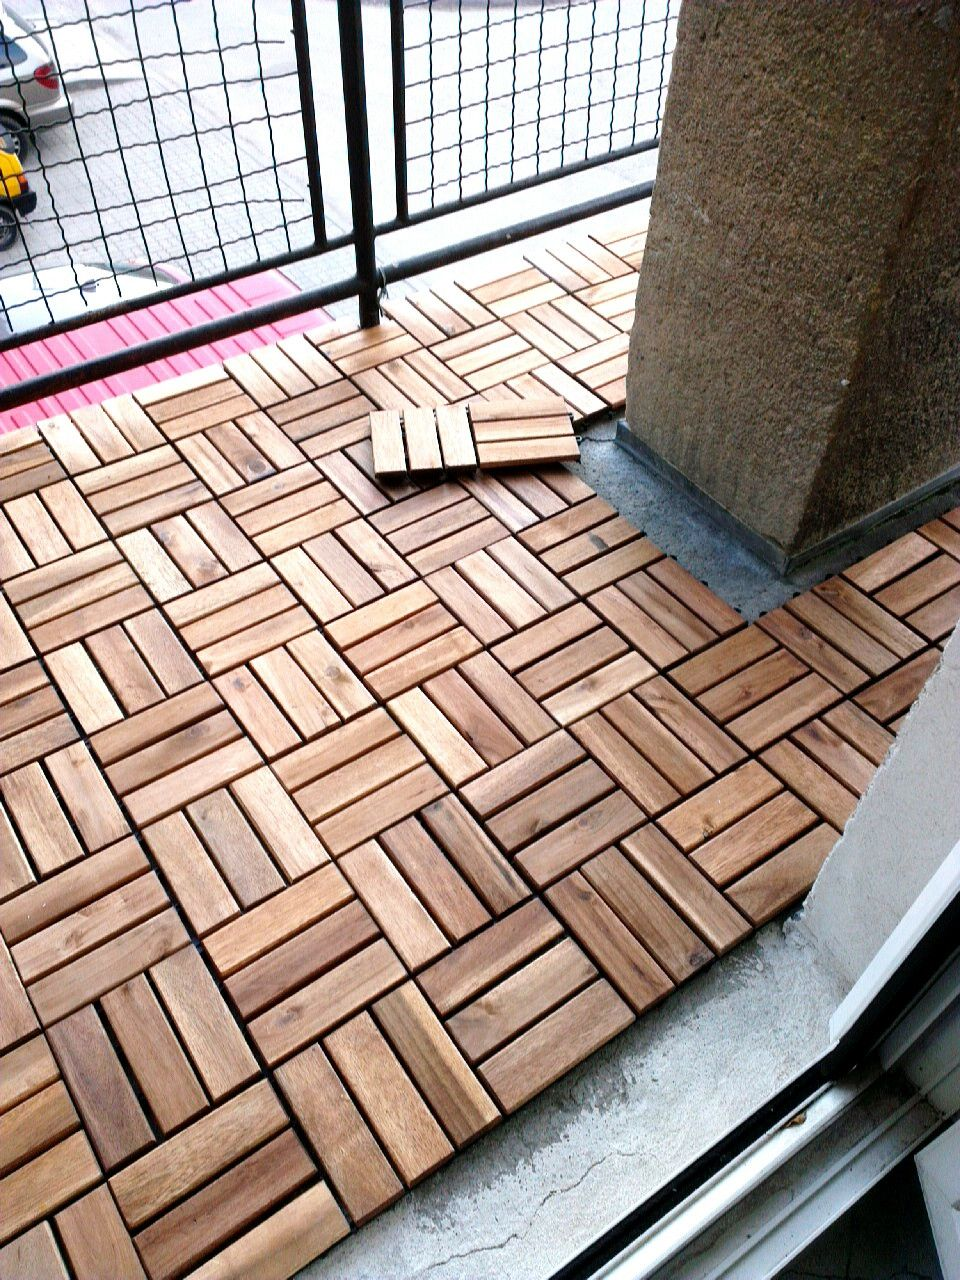 Wooden Floor Tiling For An Apartment Balcony Great Idea